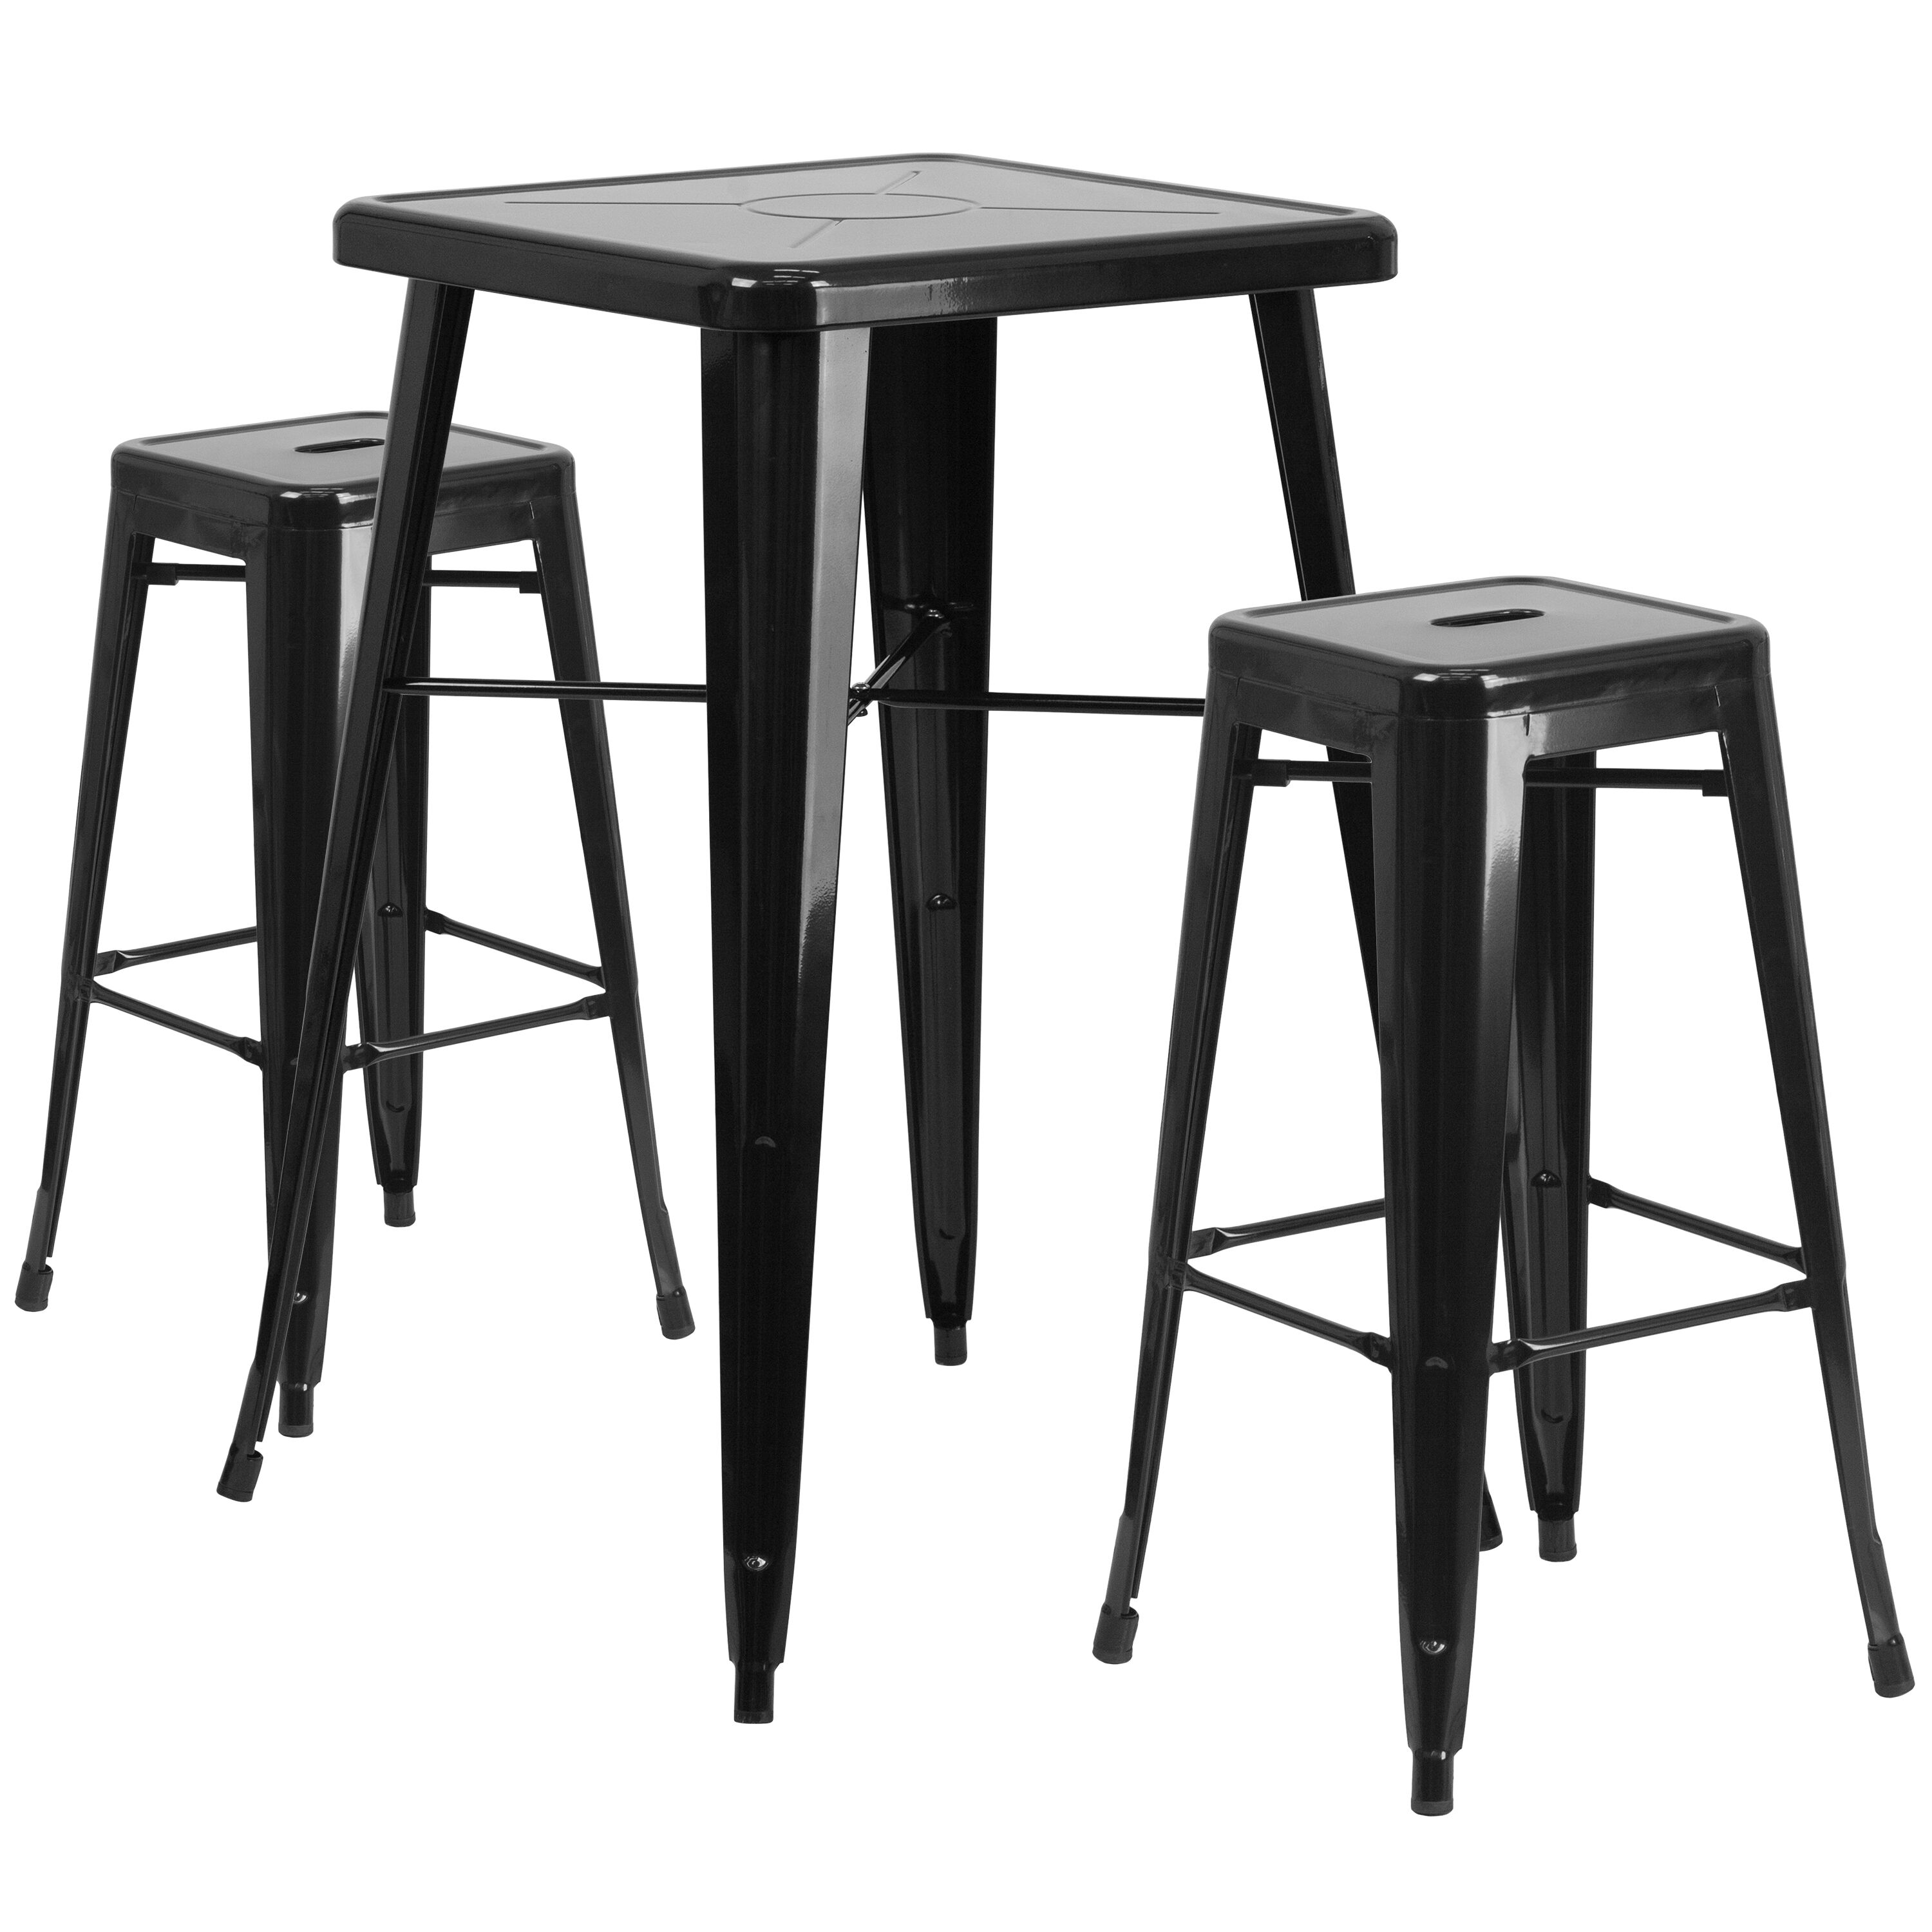 ... Our 23.75u0027u0027 Square Black Metal Indoor Outdoor Bar Table Set With 2  Square